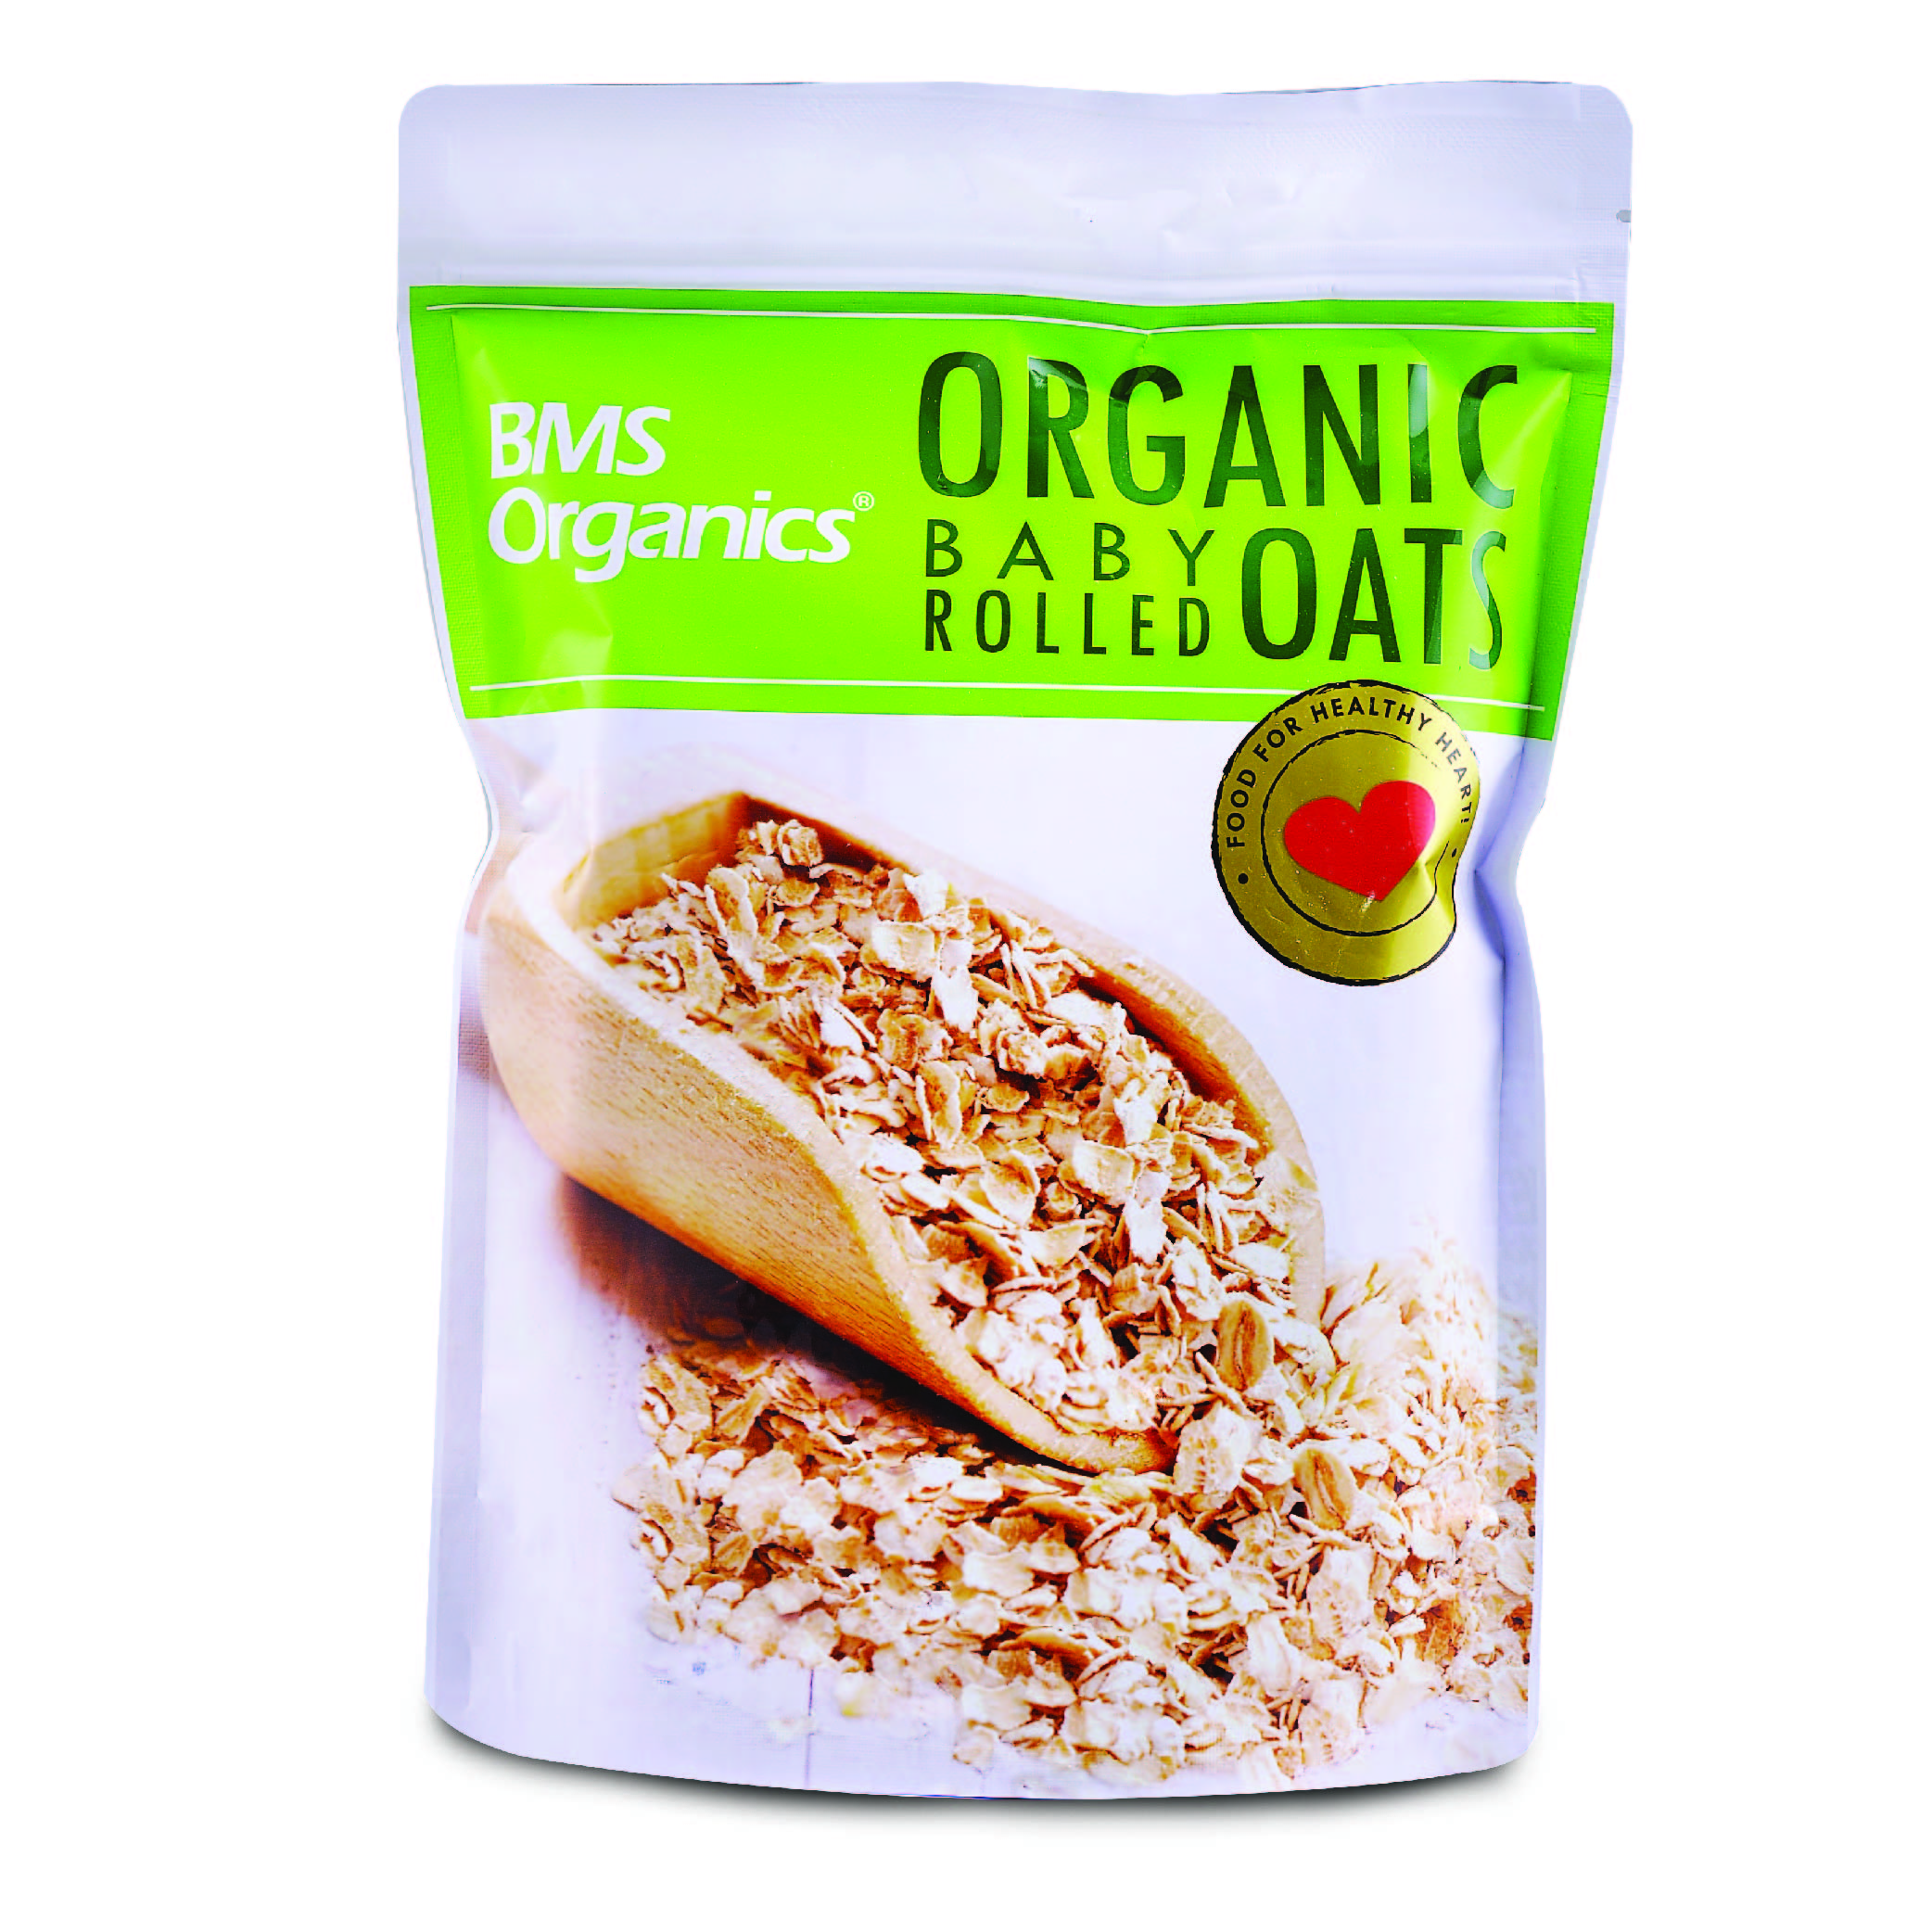 BMS Organics Baby Rolled Oat (3 Packs Bundle)